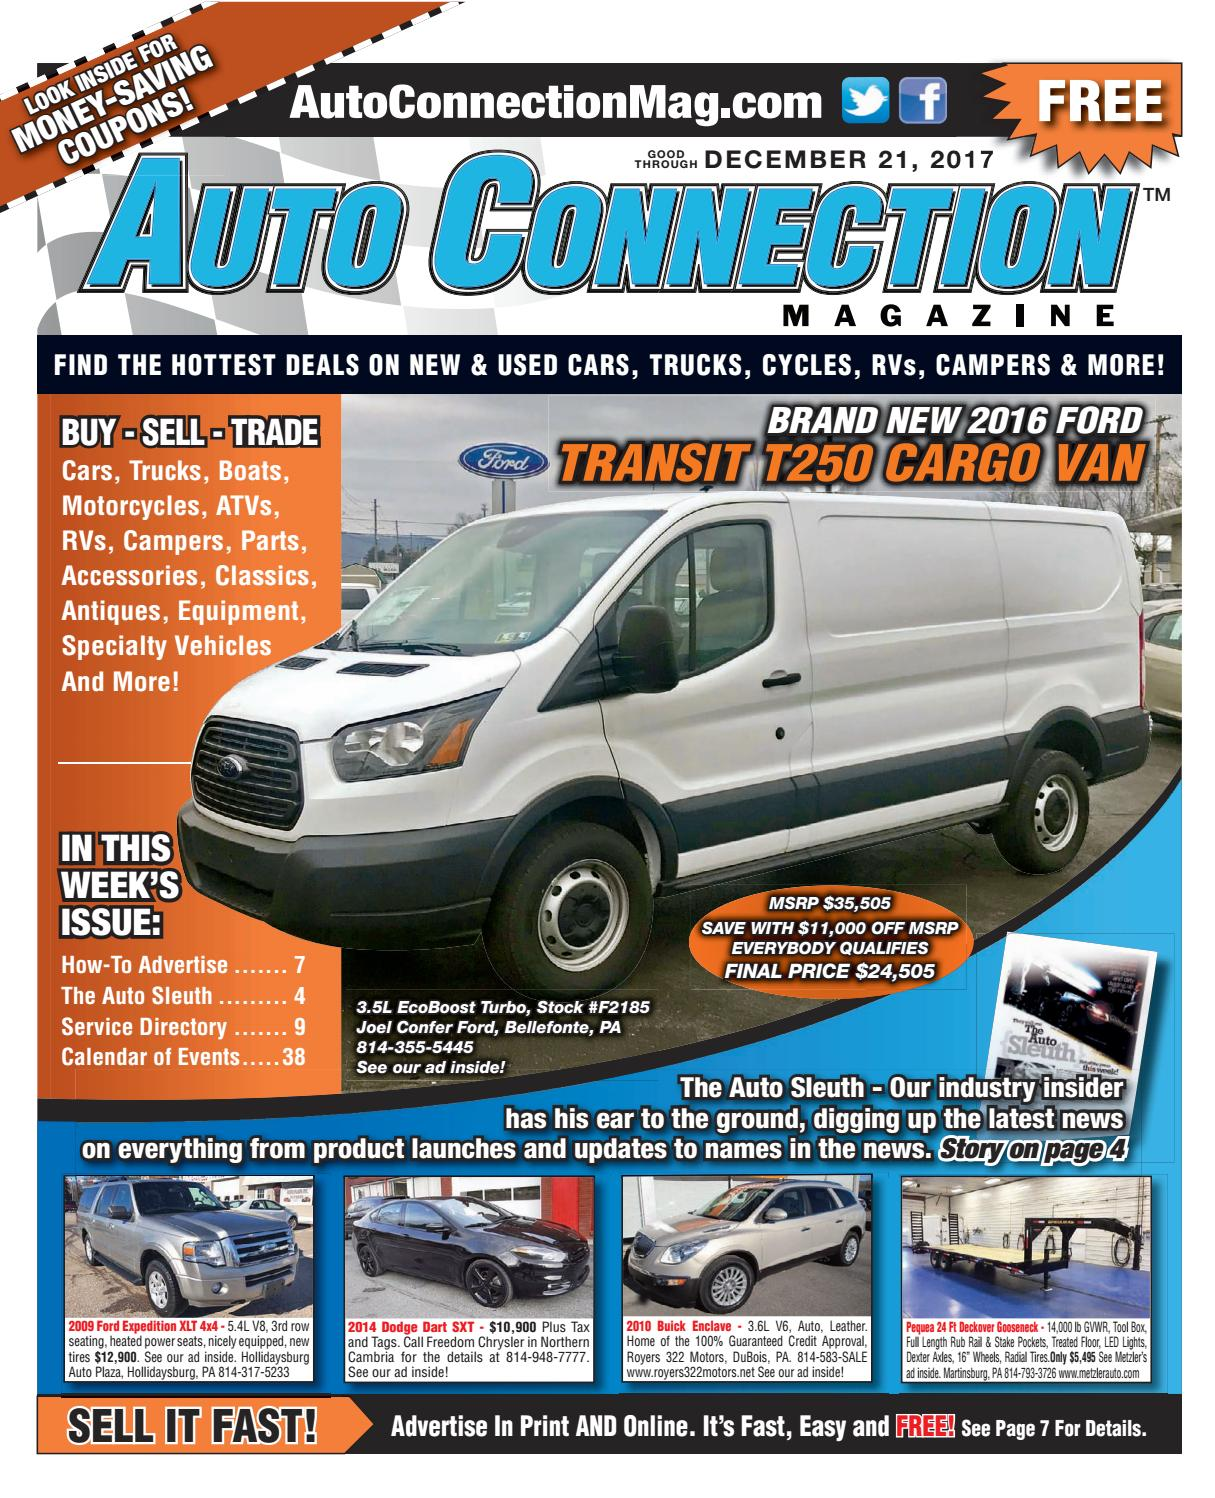 12 21 17 auto connection magazine by auto connection magazine issuu fandeluxe Images